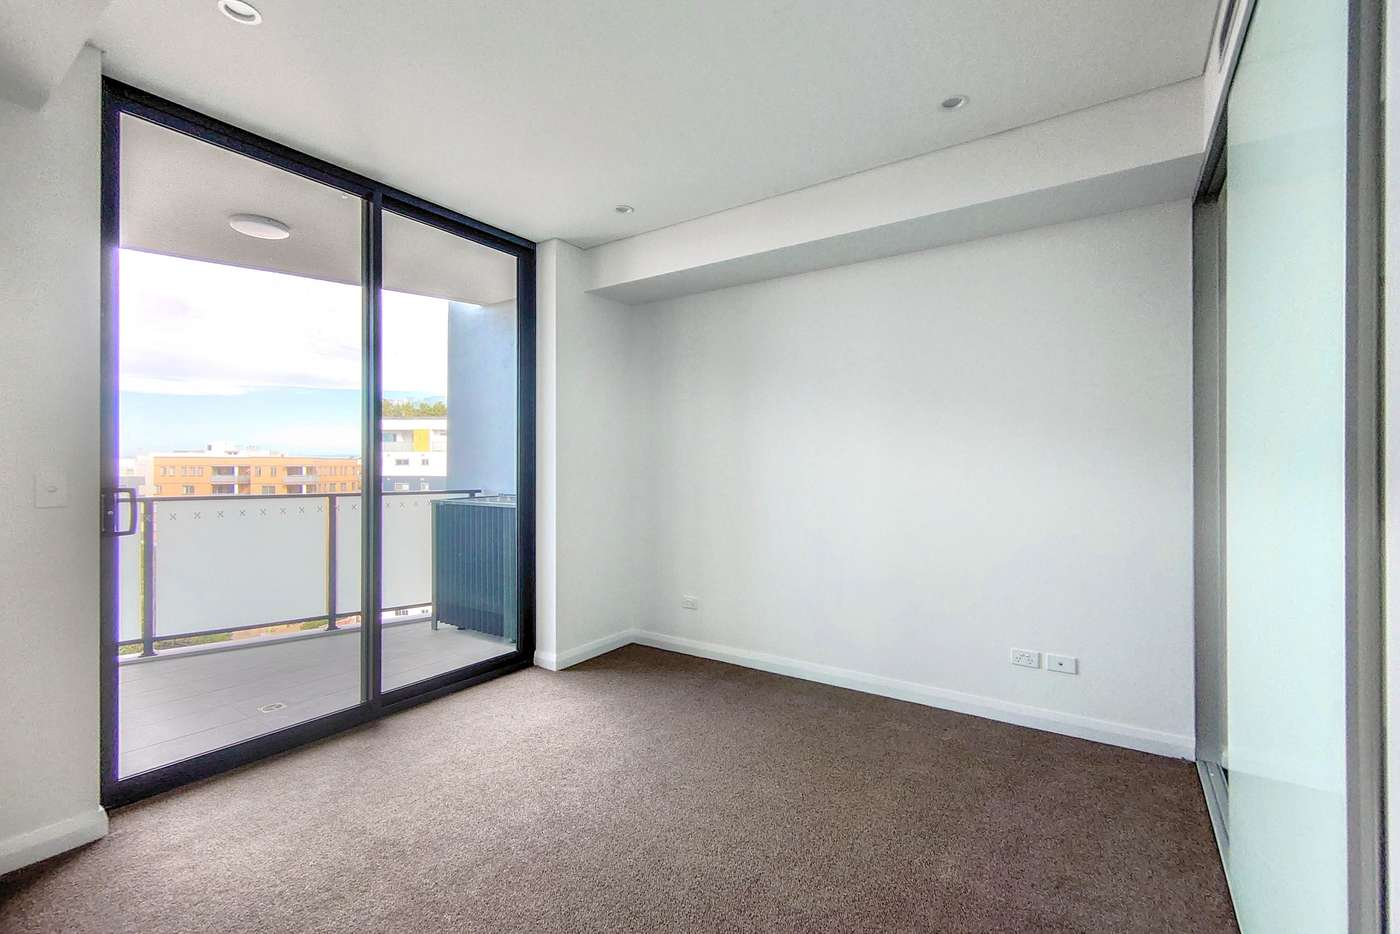 Sixth view of Homely apartment listing, 605/2 Chapel Street, Rockdale NSW 2216